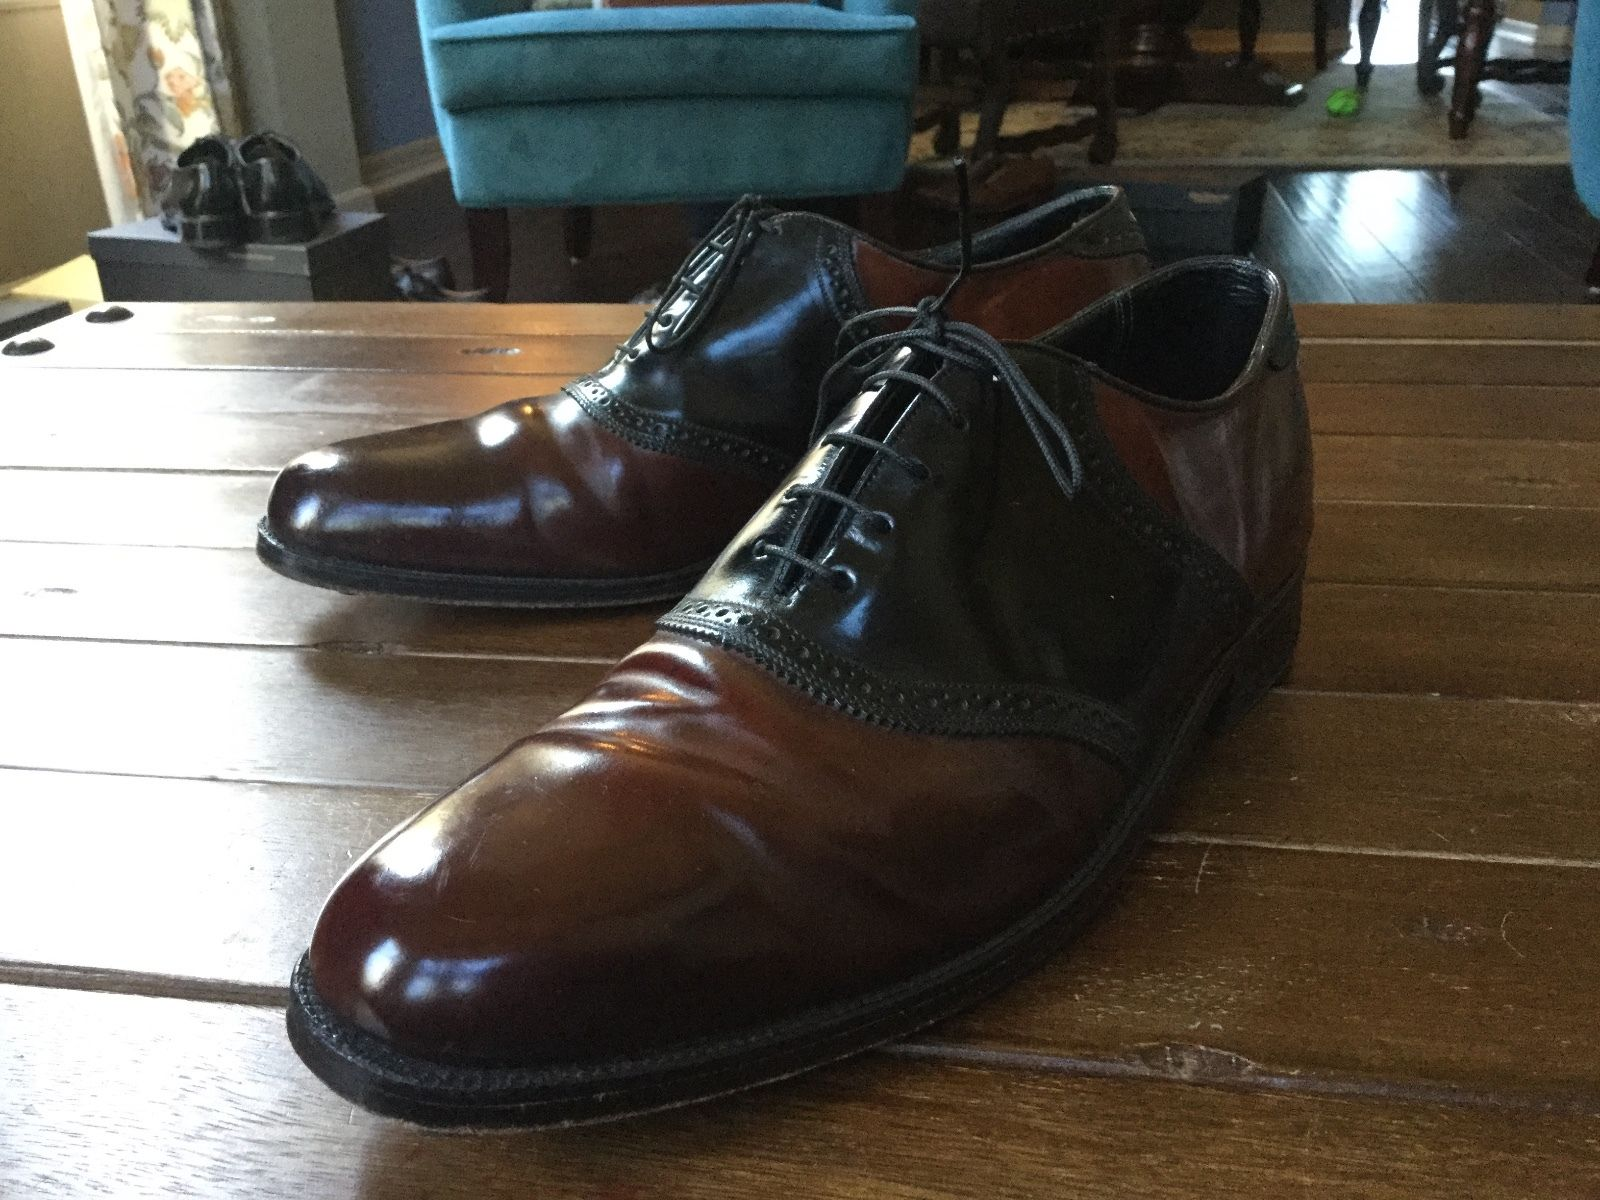 shell cordovan Florsheim Imperial saddle shoes